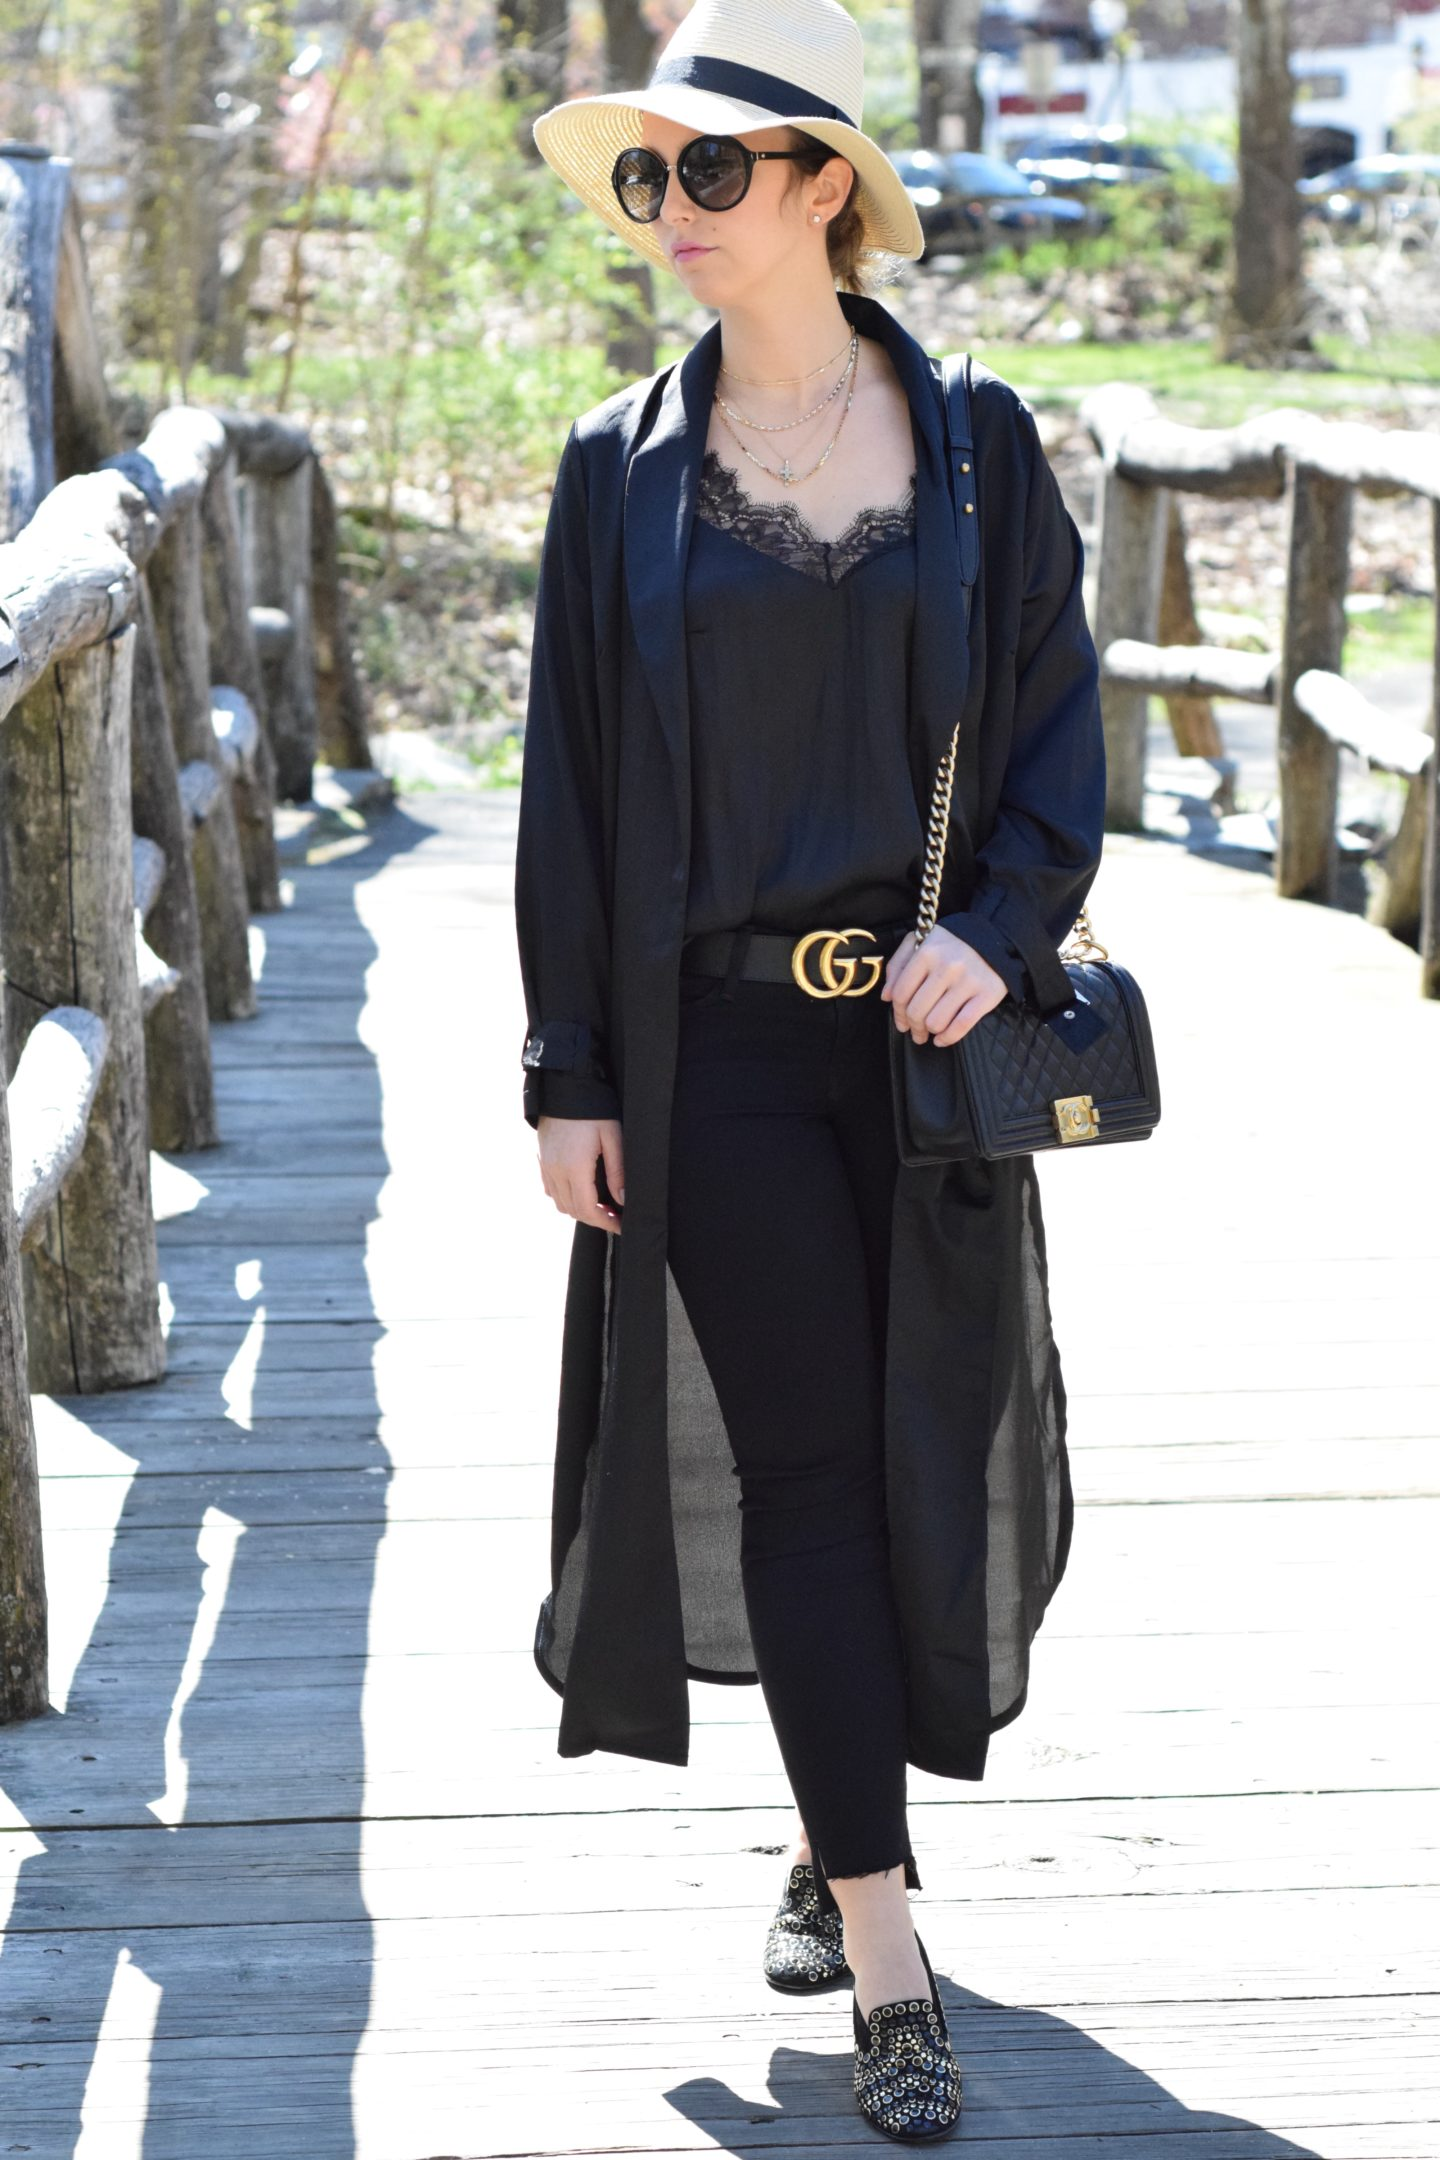 westchester style-blogger-outfit inspo